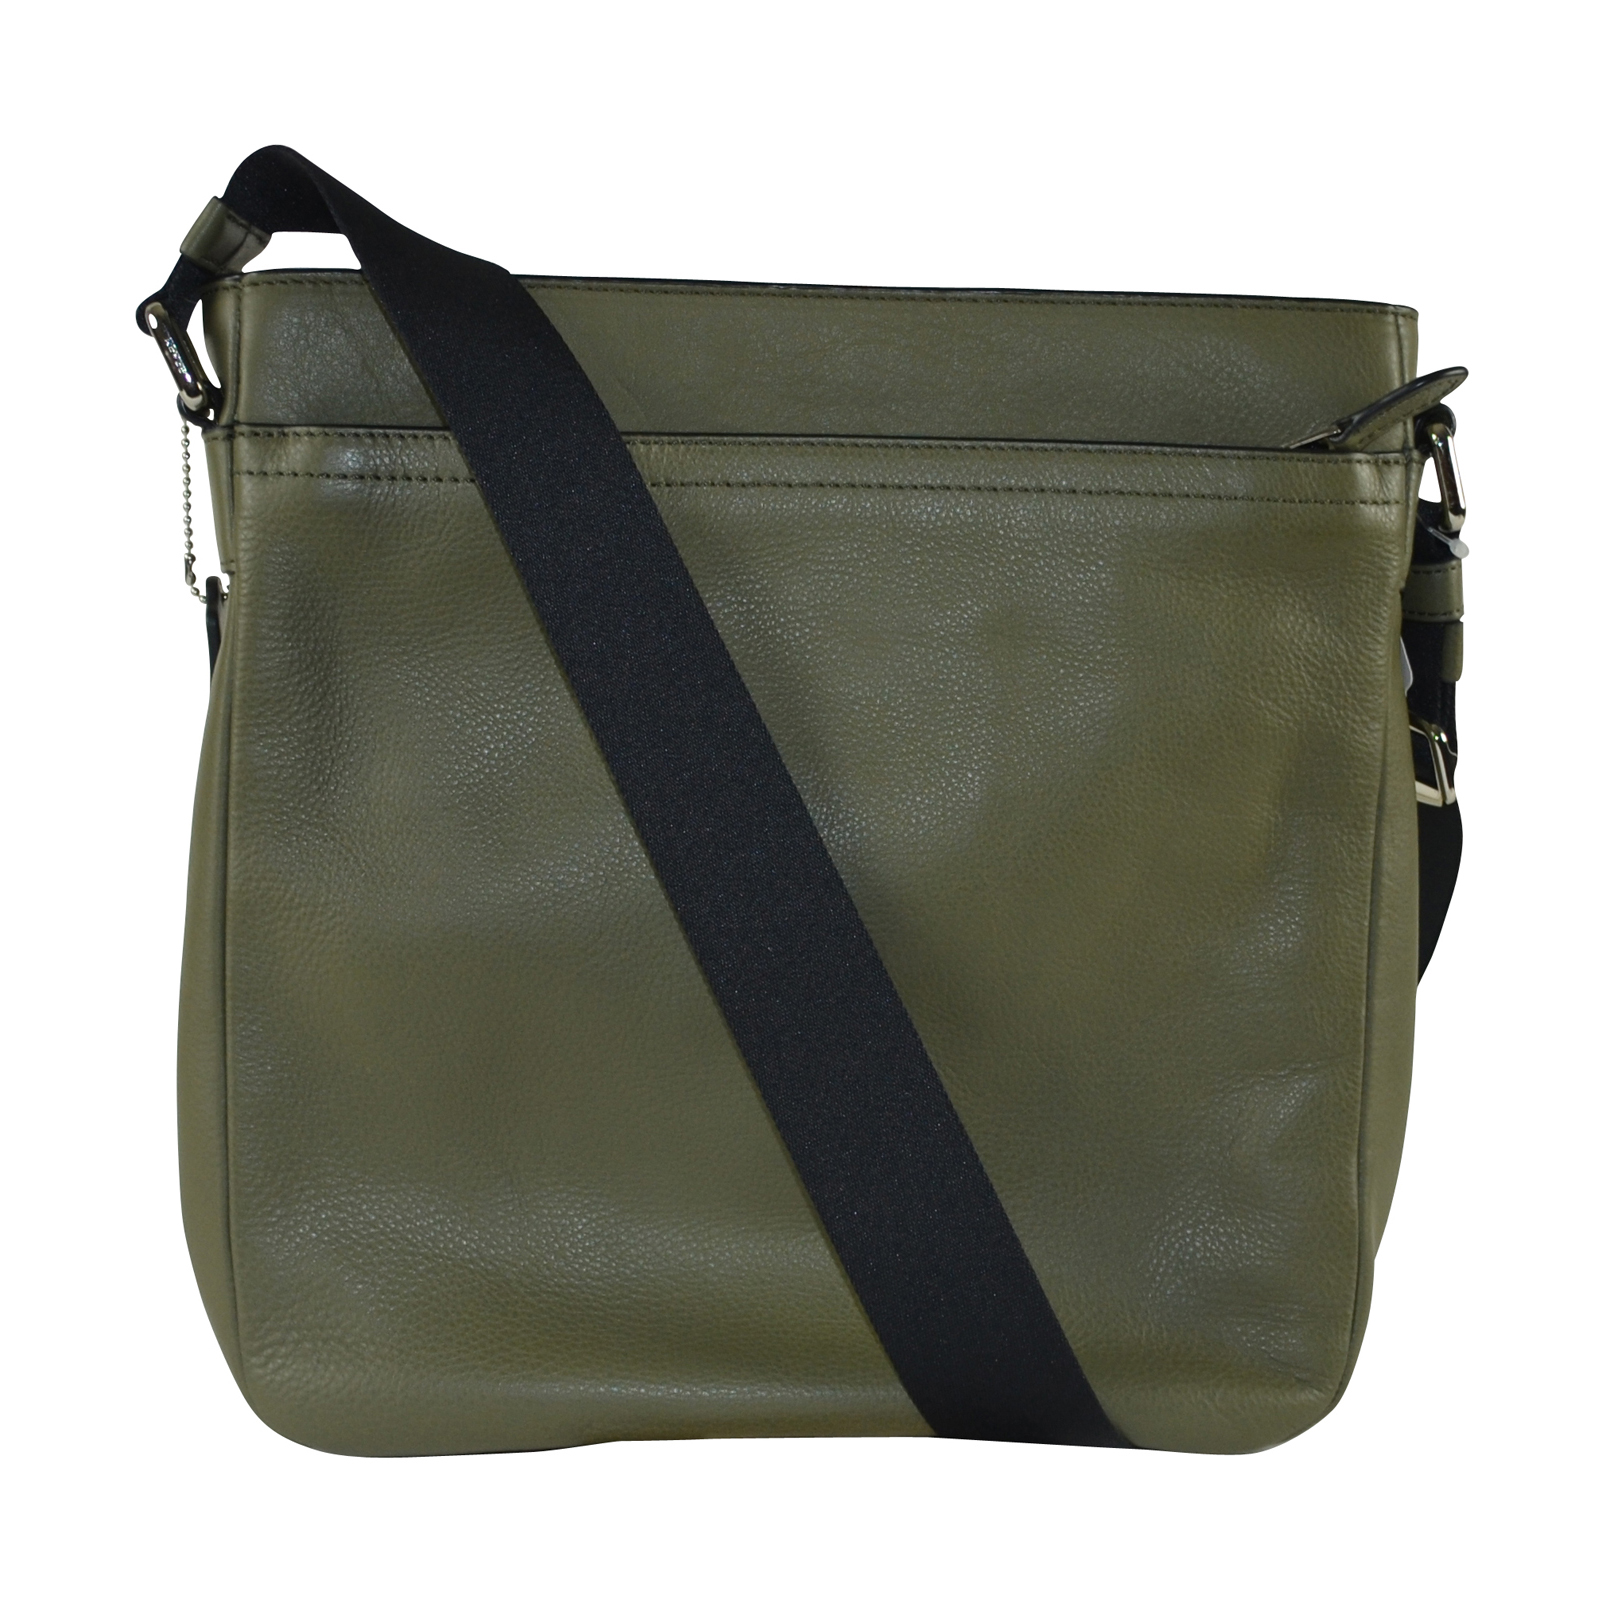 nwt coach s business leather city crossbody messenger